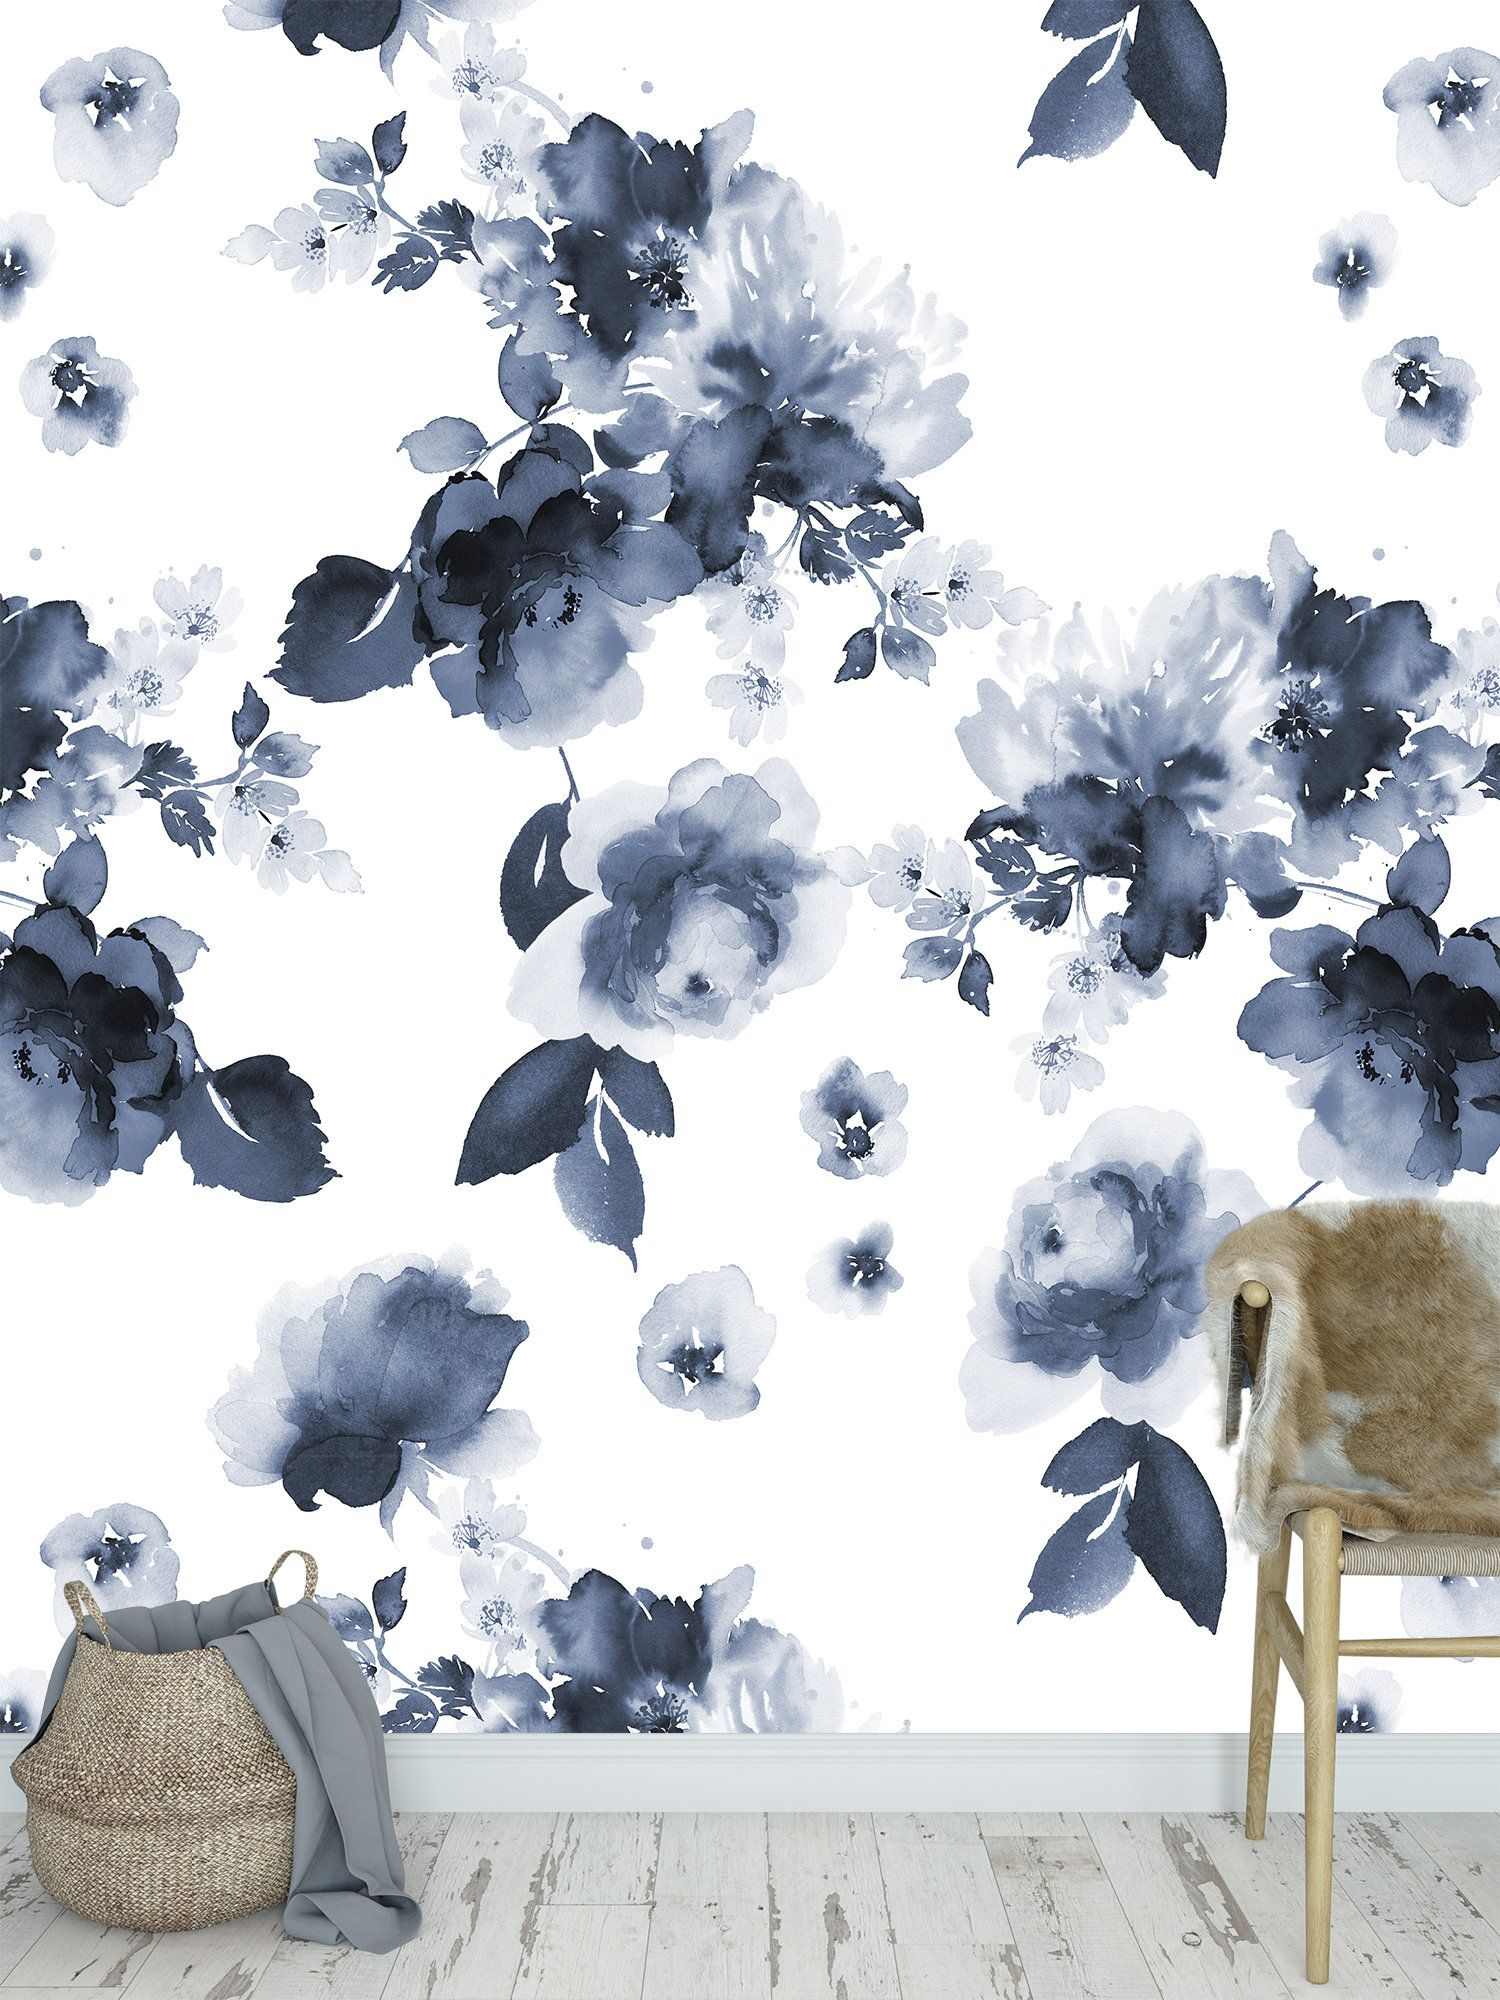 High Quality Peel And Stick Removable Self Adhesive Wallpaper Blue Watercolor Flower Pattern Wallpaper Watercolor Flowers Pattern Blue Floral Wallpaper Pattern Wallpaper